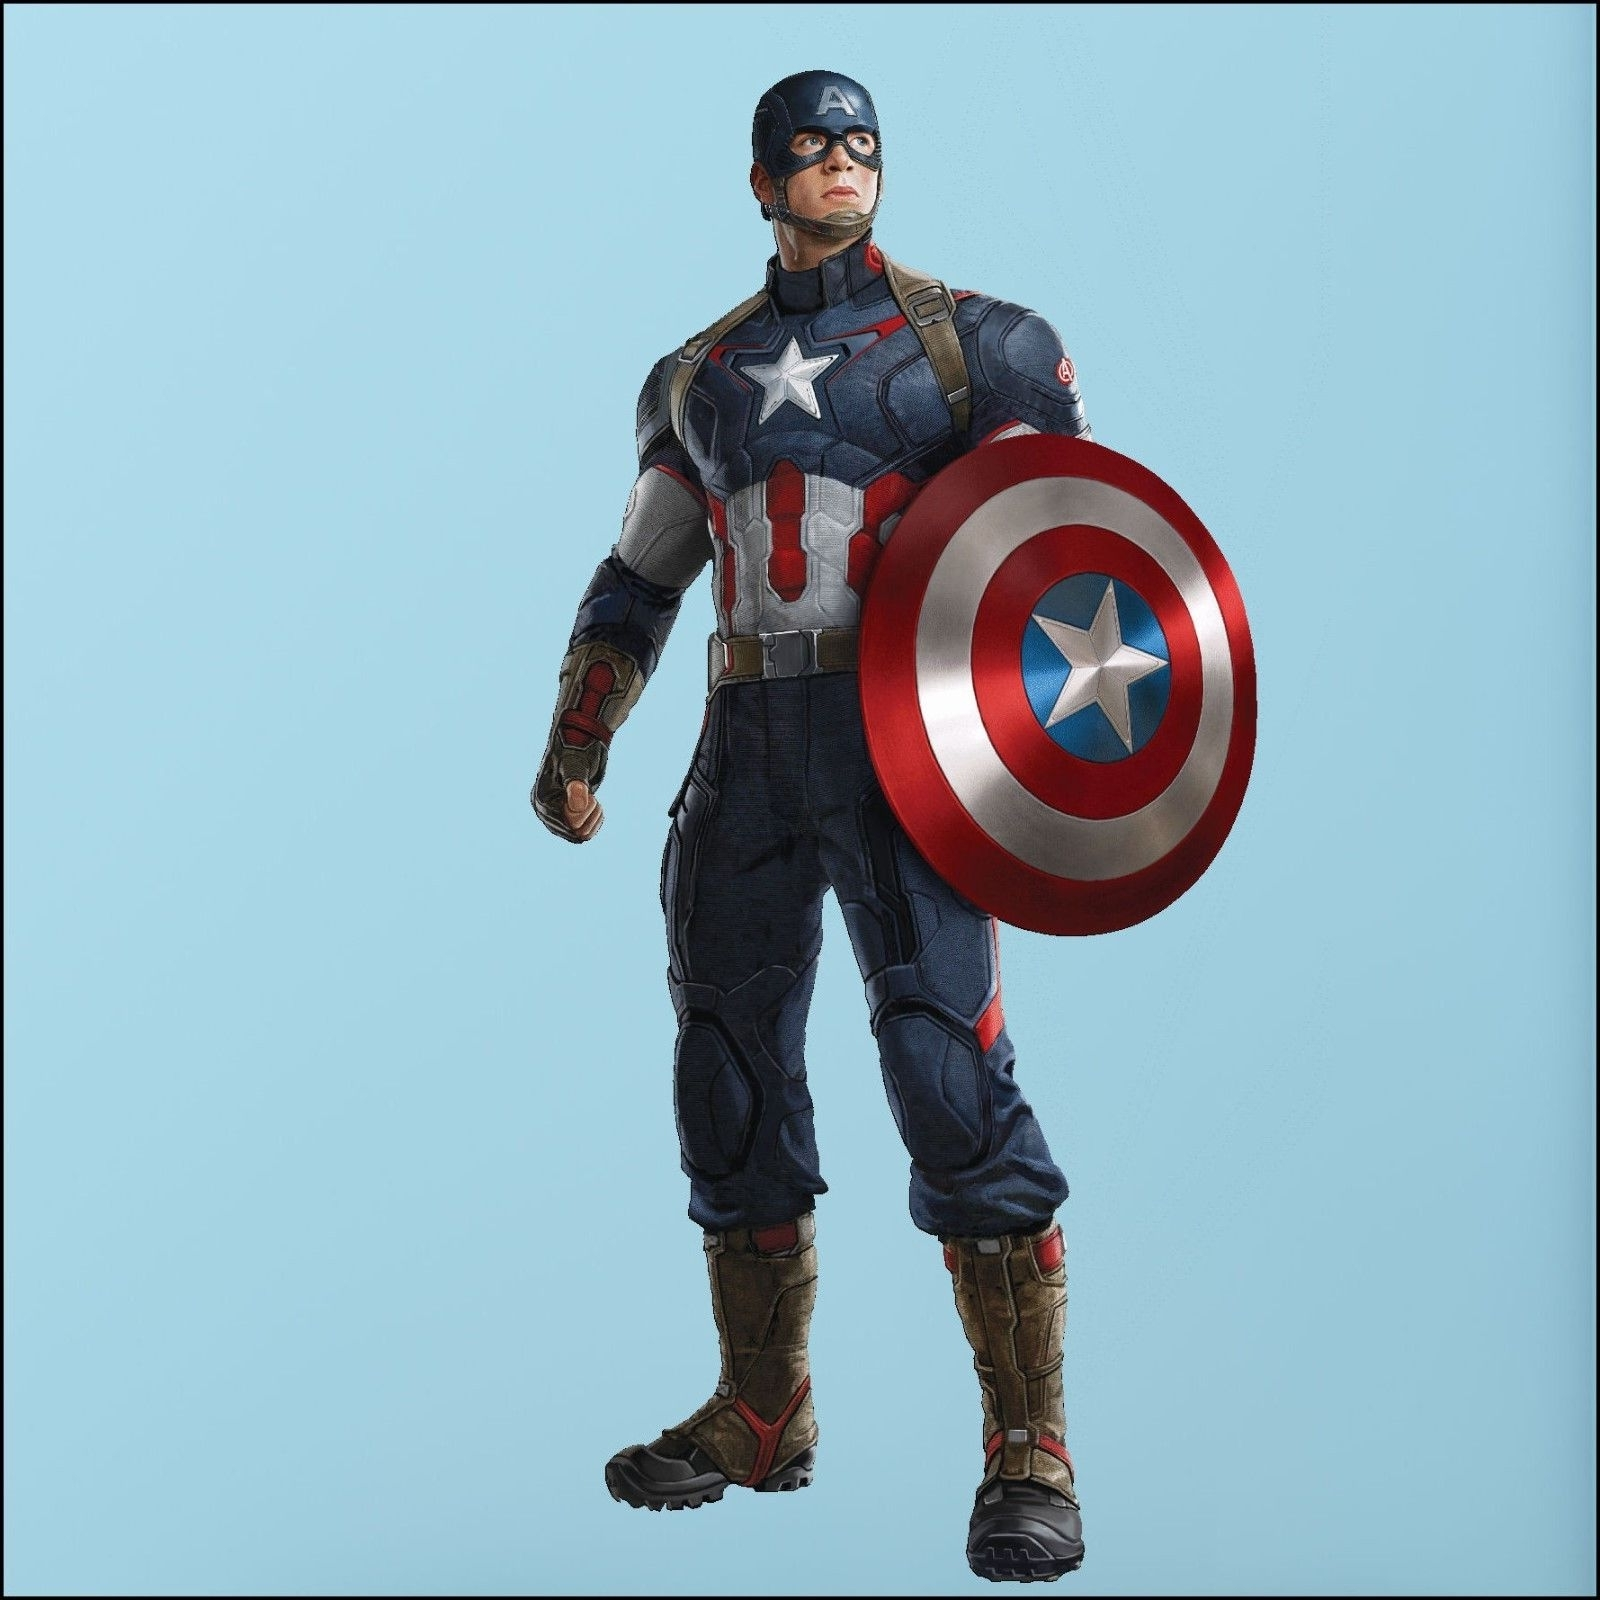 Captain America Avengers Photo Quality 3d Wall Sticker Art Mural In Well Known Captain America Wall Art (View 15 of 15)